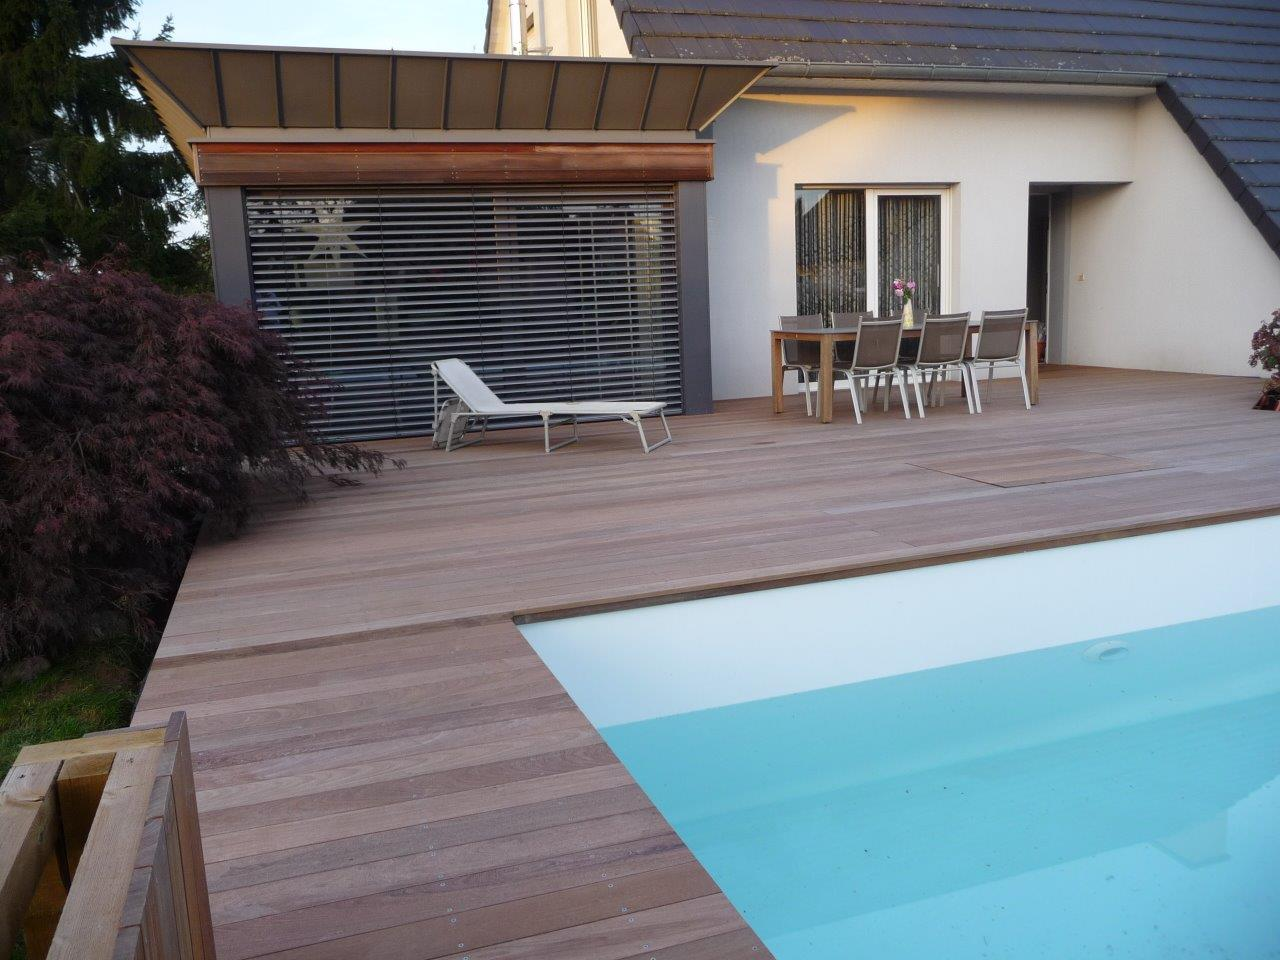 terrasse en bois autour d une piscine hors sol. Black Bedroom Furniture Sets. Home Design Ideas